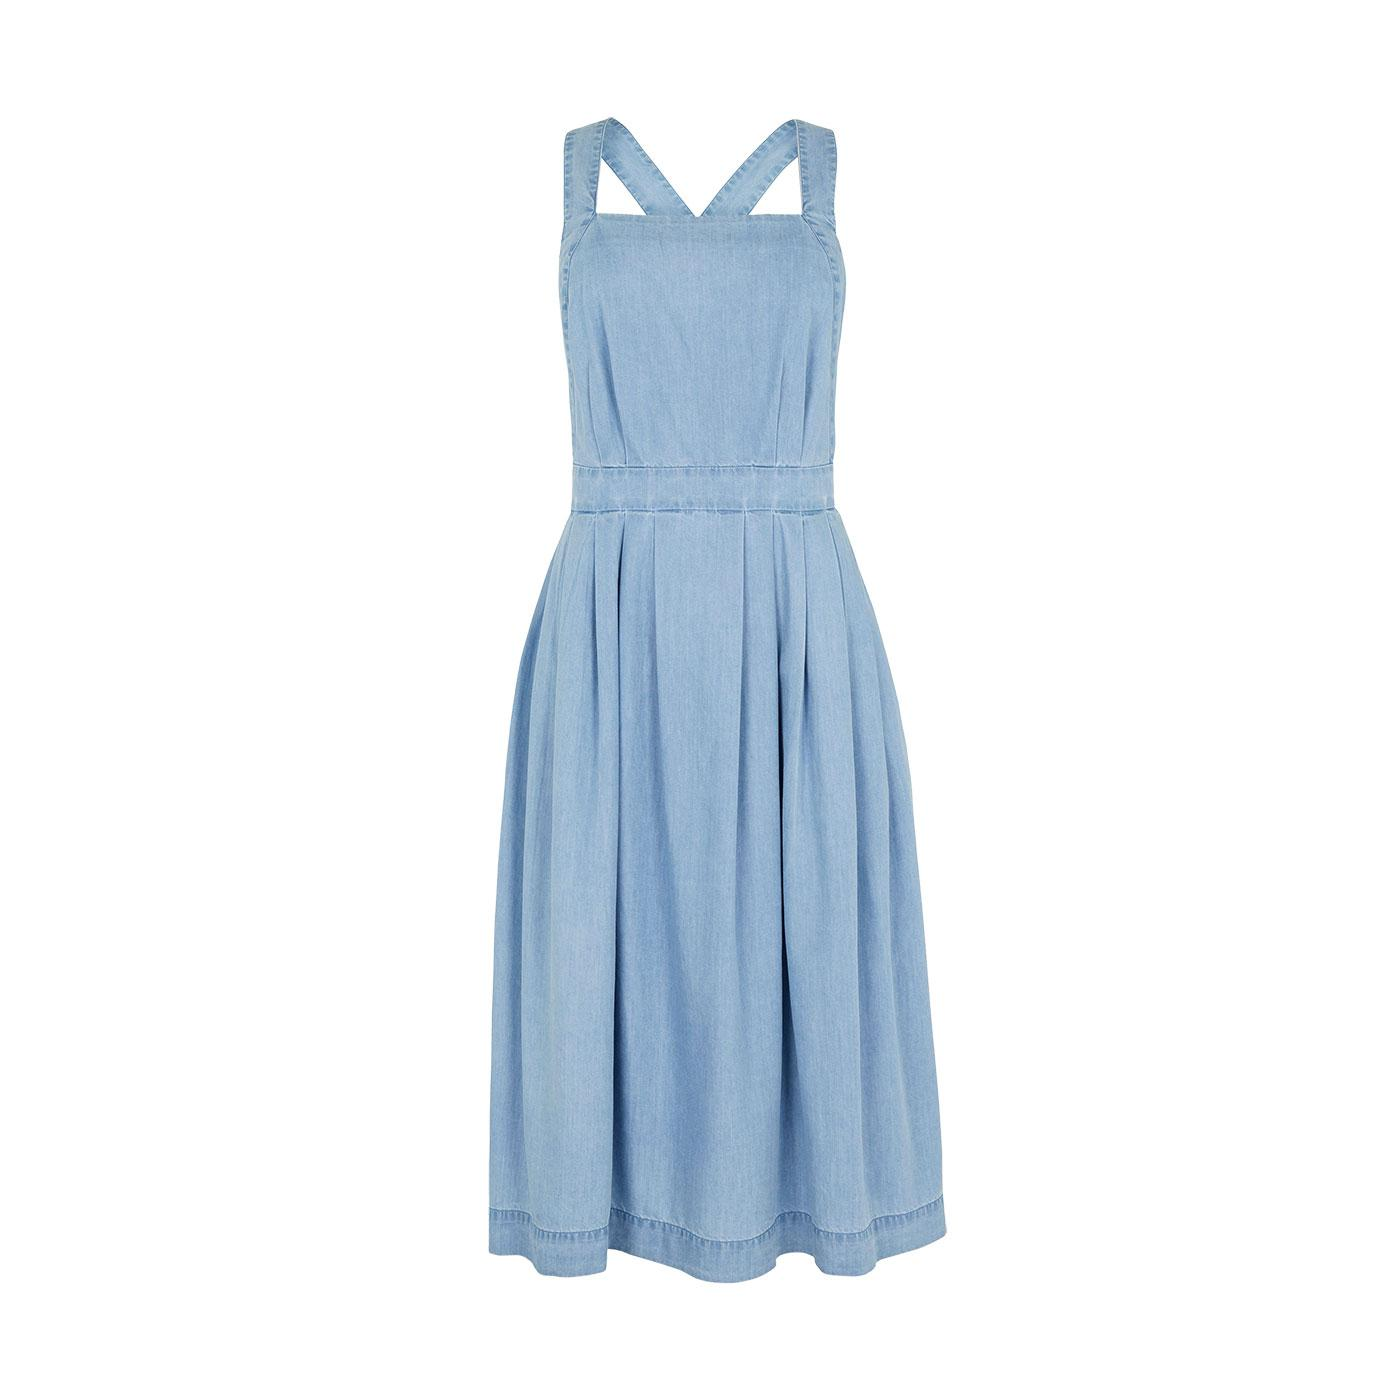 Romy EMILY & FIN Retro Cross Back Sun Dress